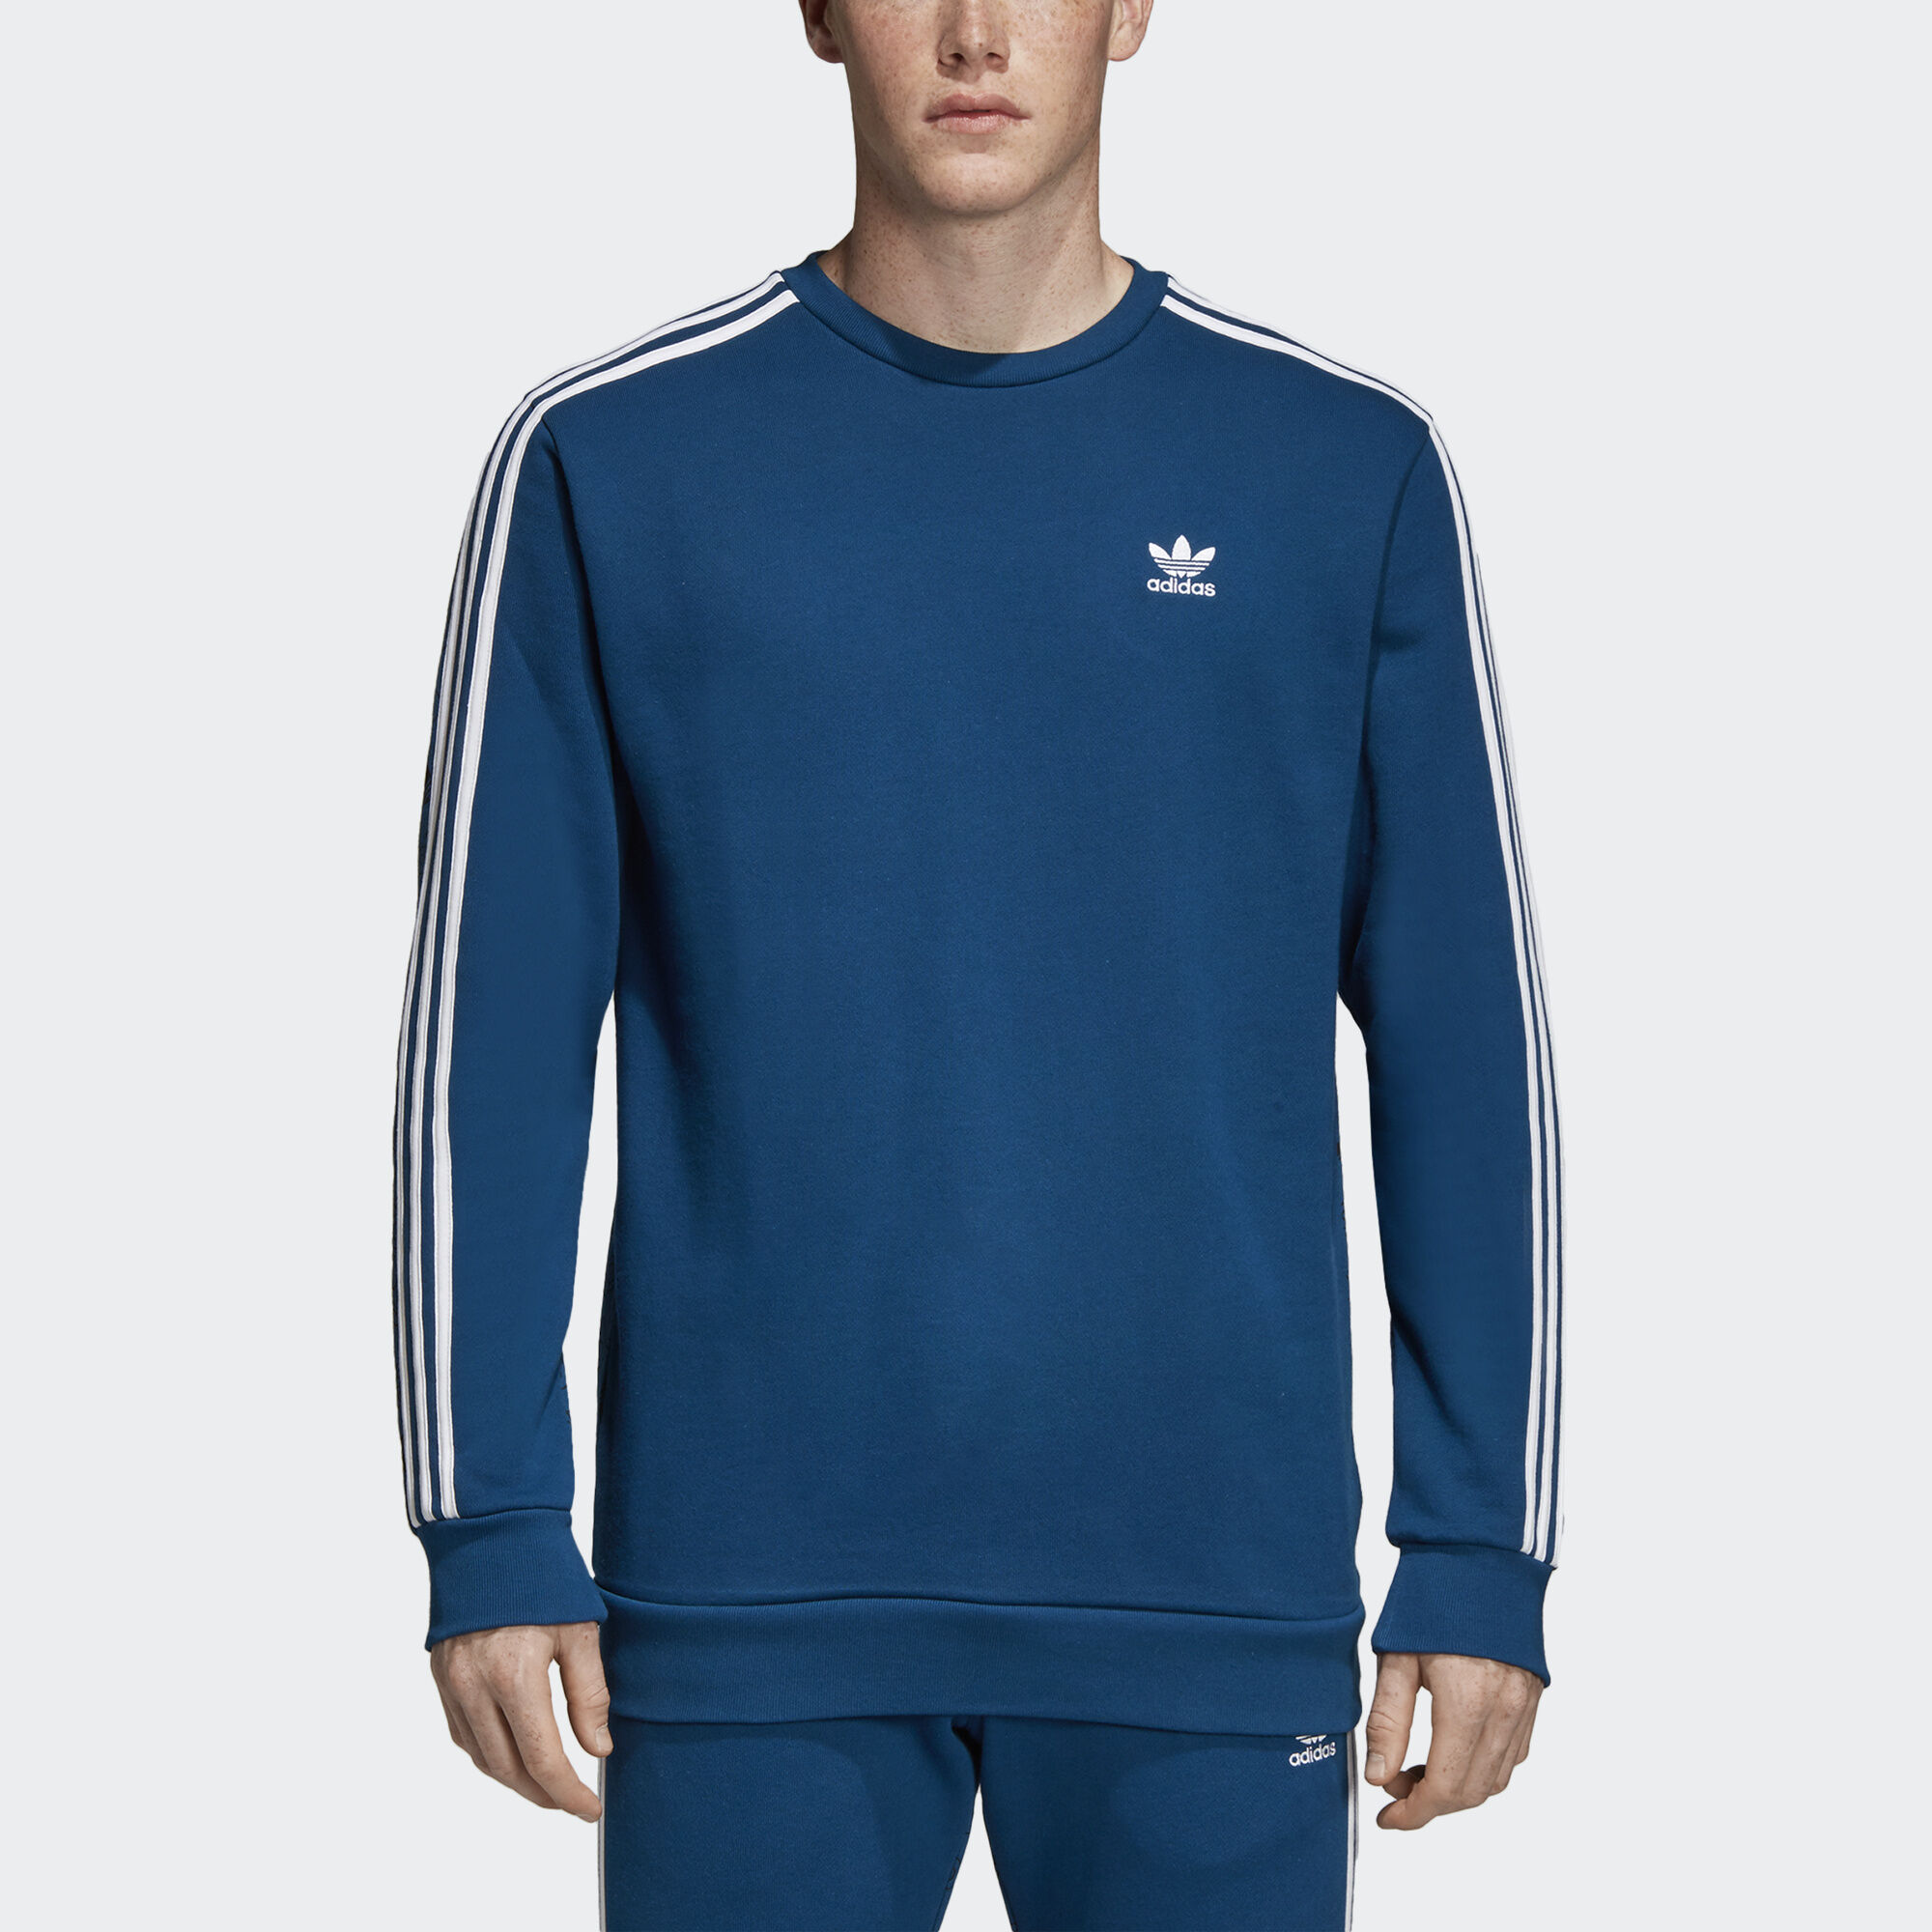 Джемпер Monogram adidas Originals